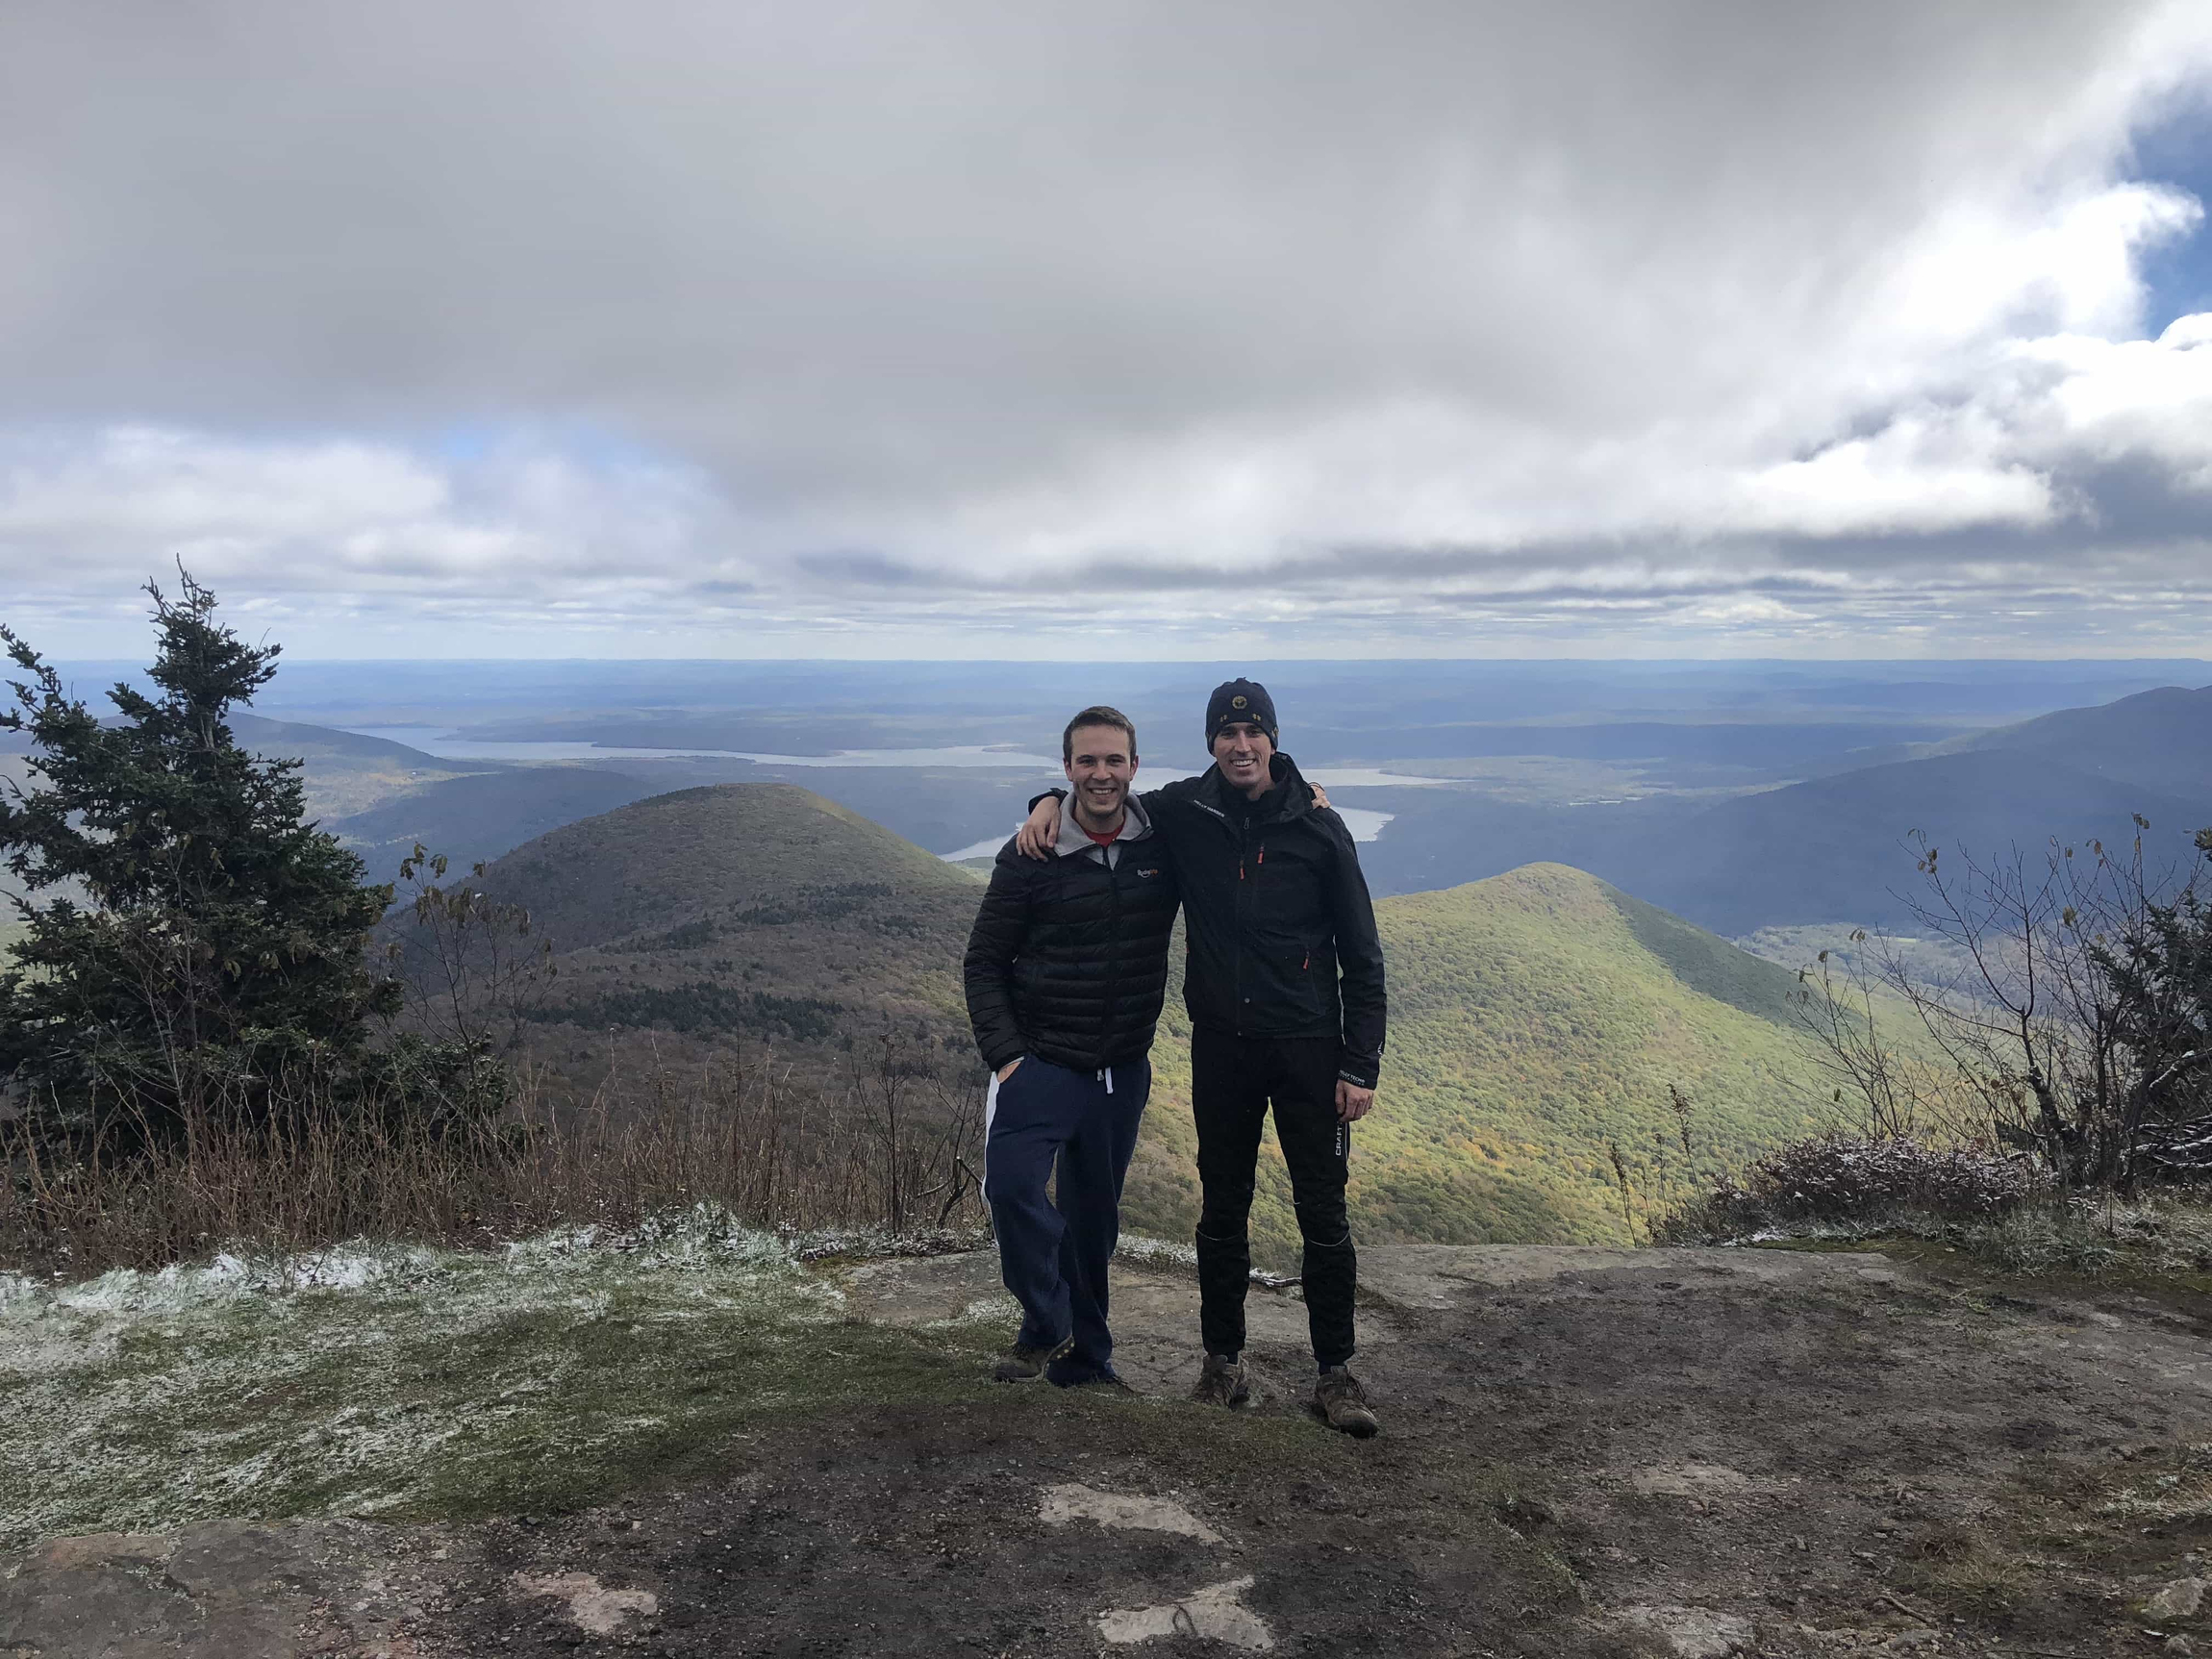 The hike where Travis joined Pawlicy Advisor